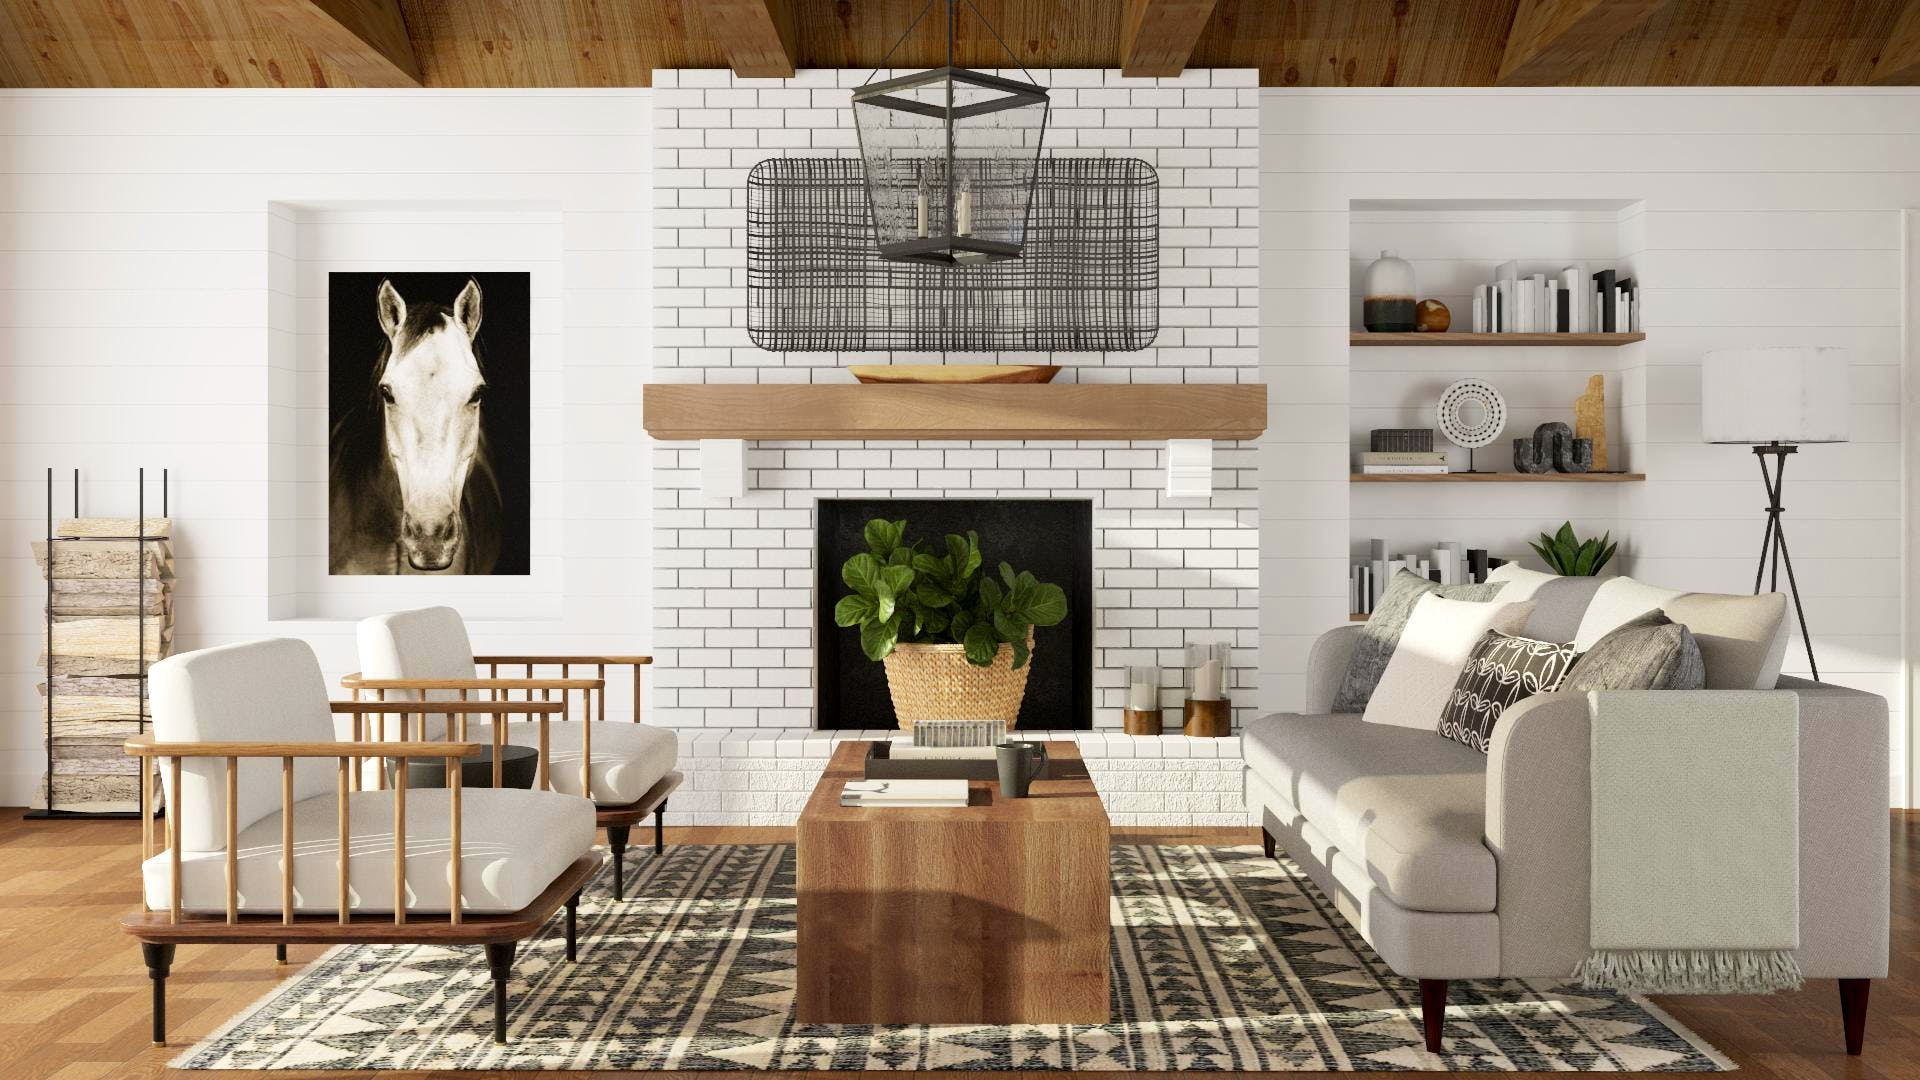 Farmhouse Style with a Modern Transitional Twist